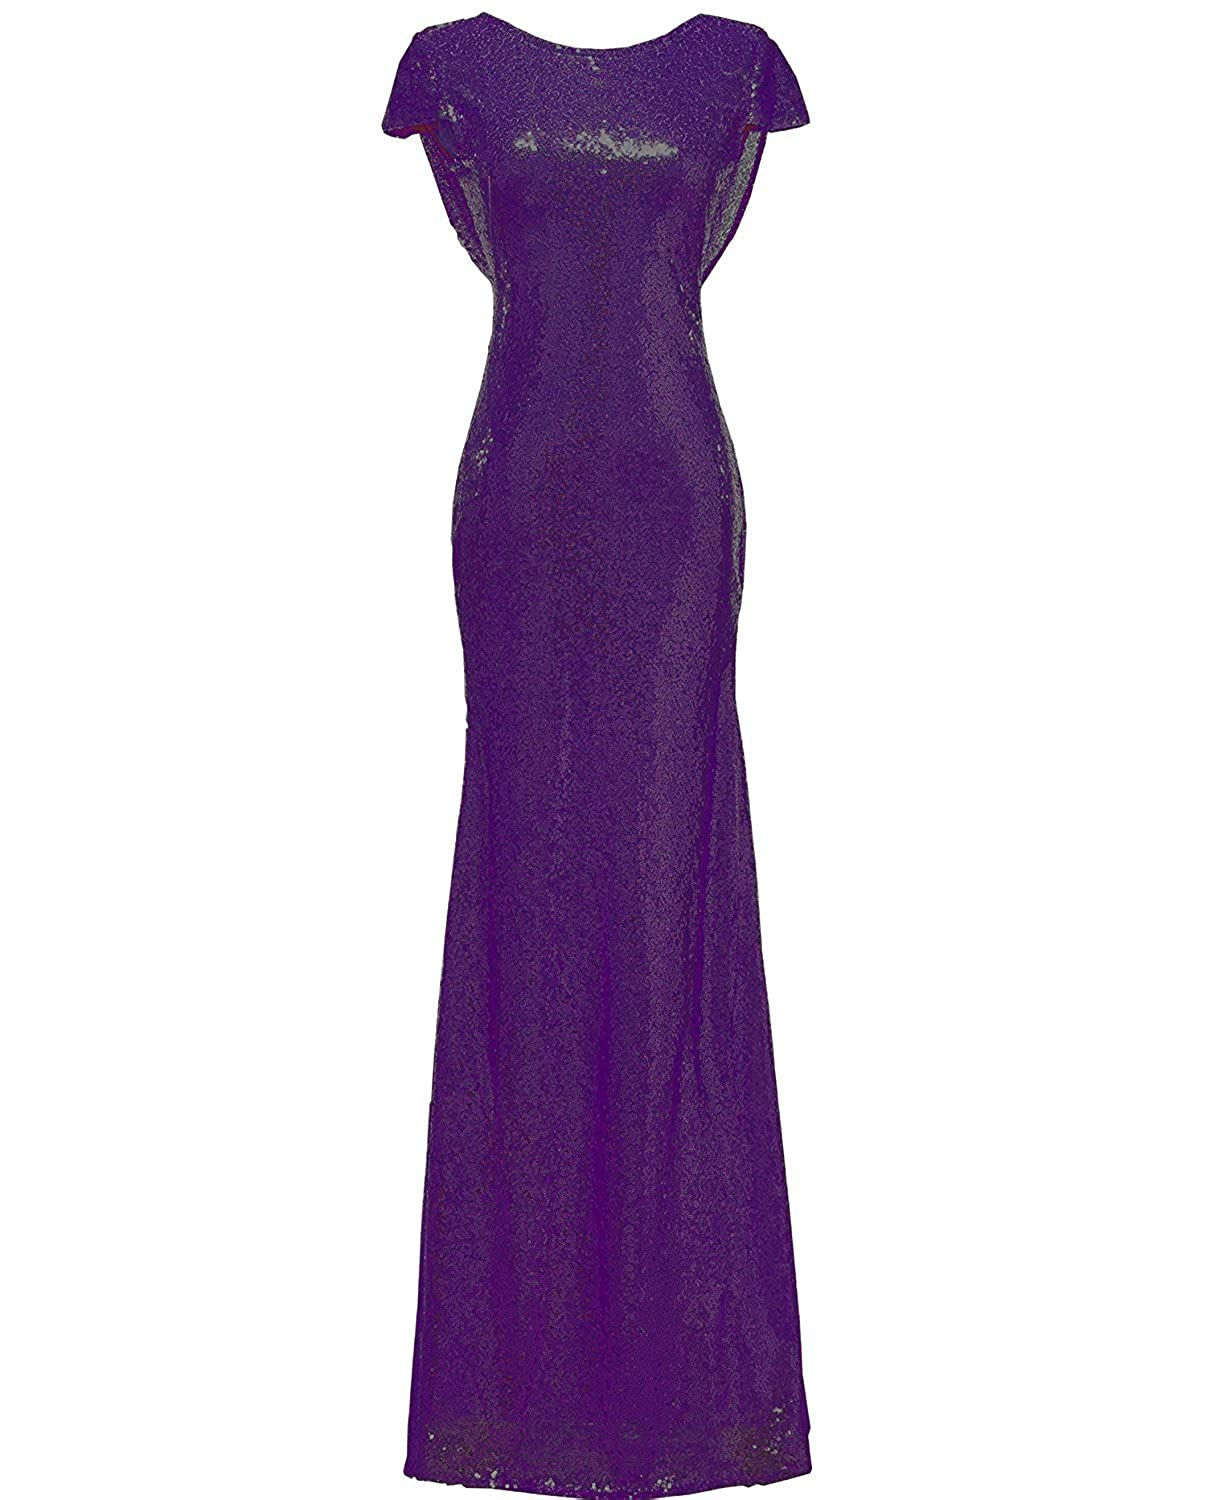 Solovedress Womens Mermaid Sequined Long Evening Dress Formal Prom Sequin Bridesmaid Dresses